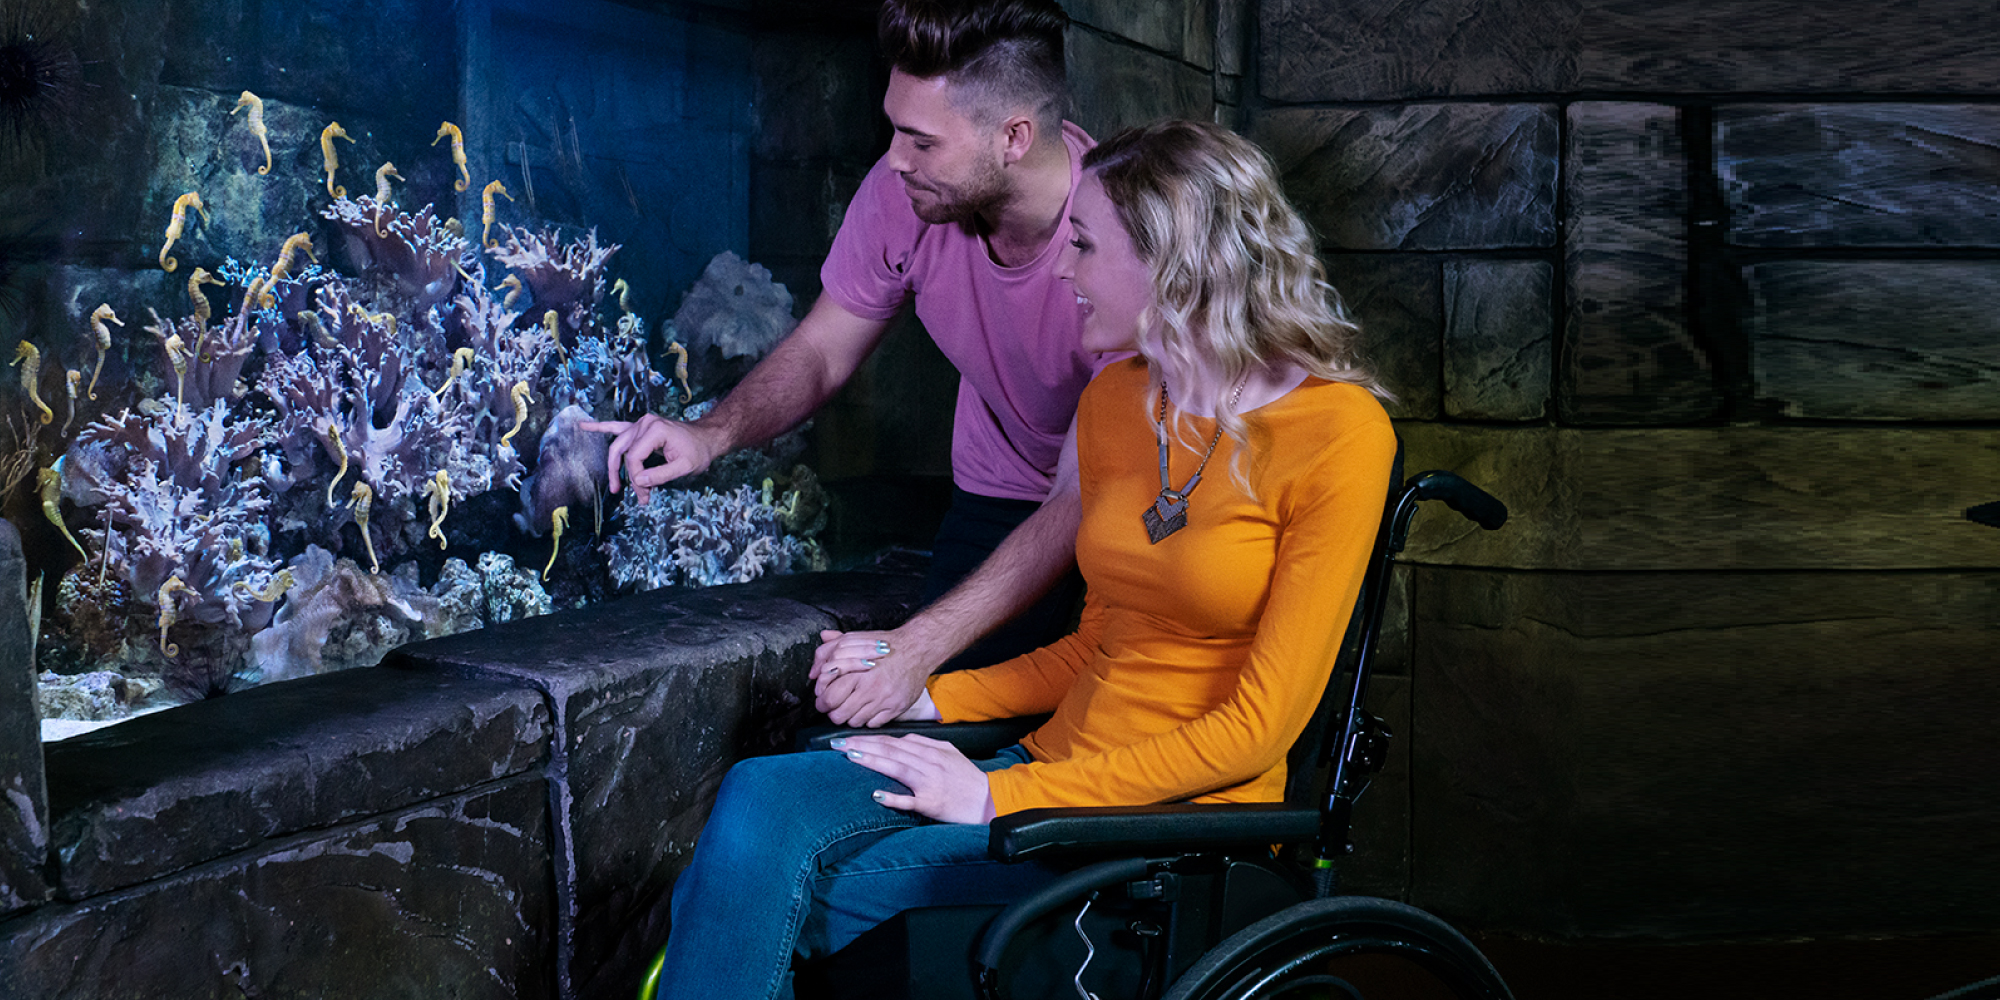 Handicap | SEA LIFE Aquarium